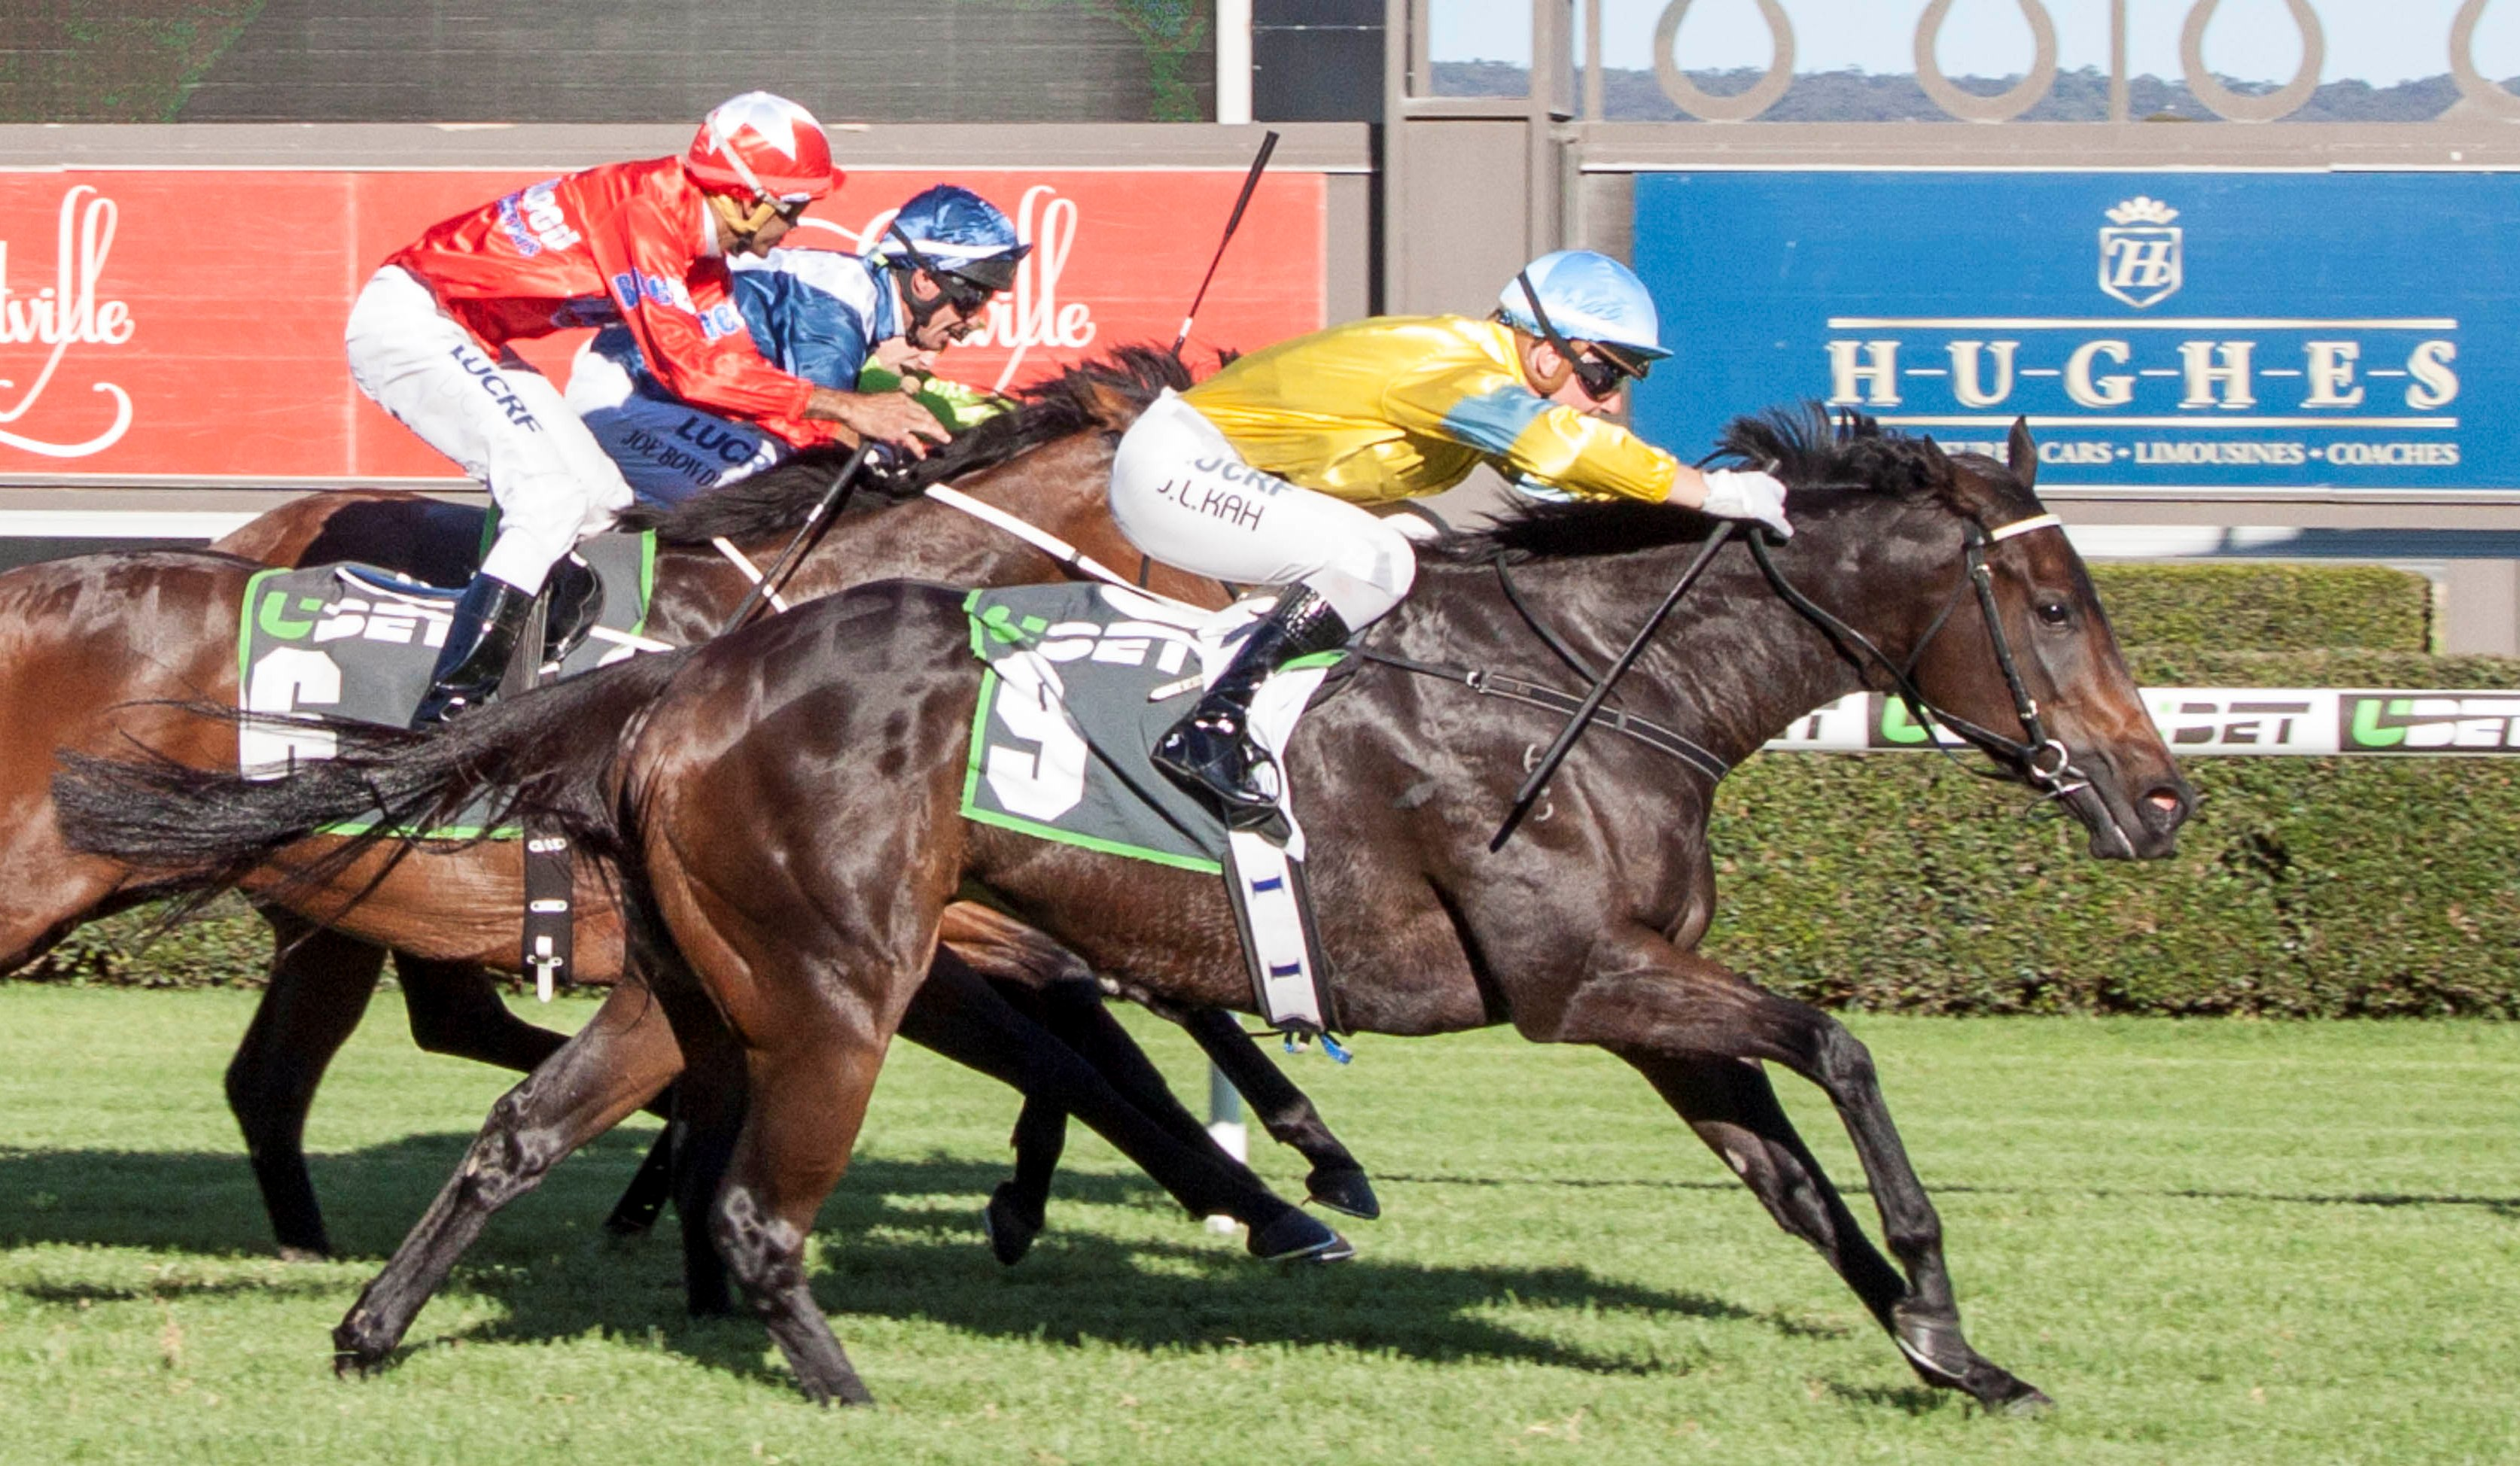 Dainty Tess wins the RN Irwin Stakes at Morphettville